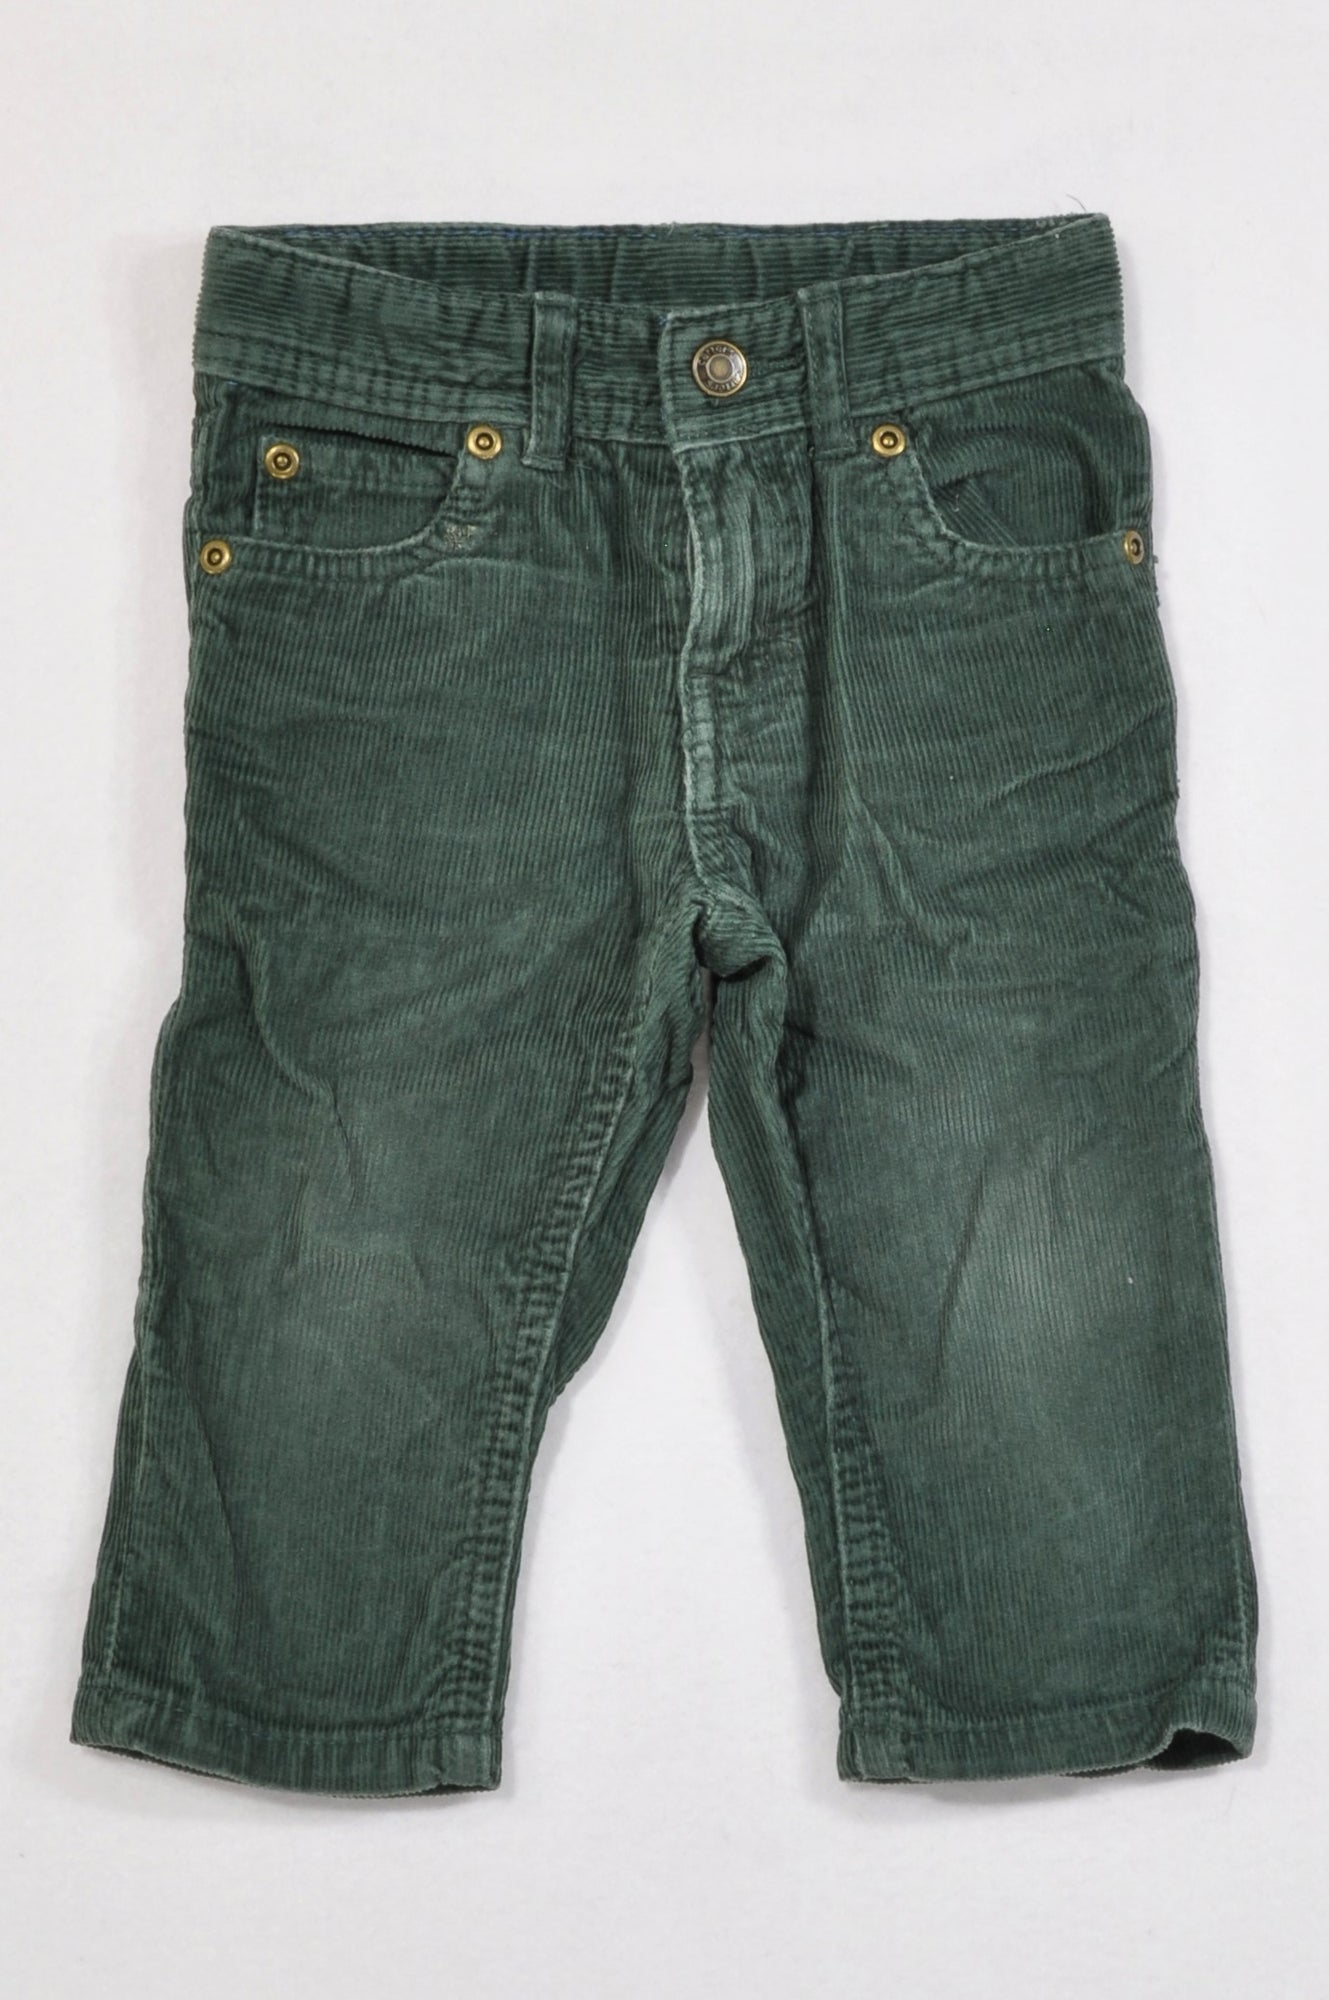 Carter's Basic Hunter Green Corduroy Pants Boys 6-12 months